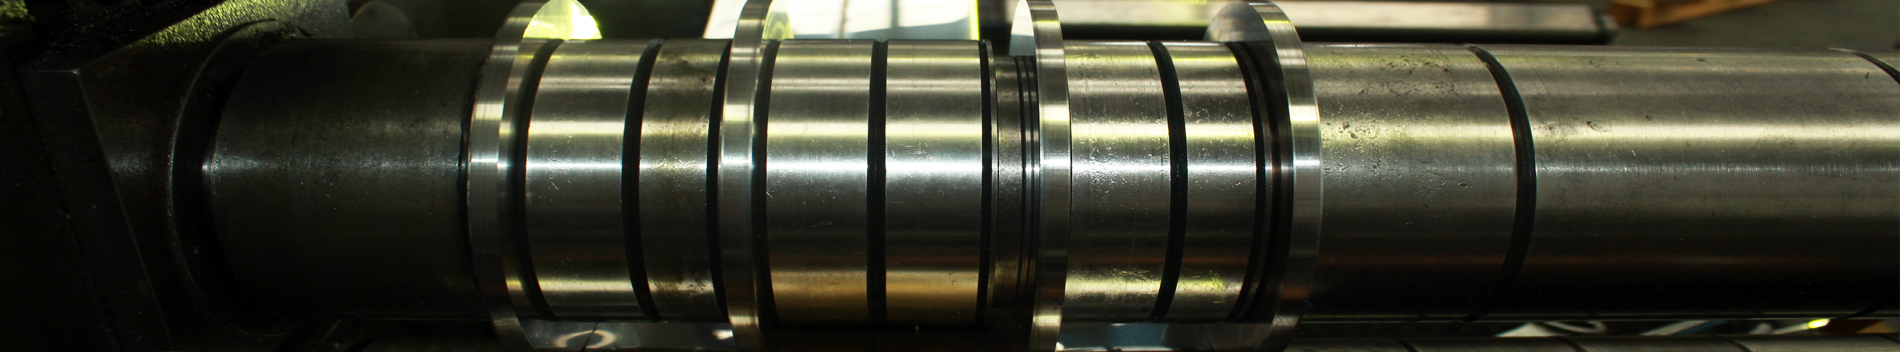 Nickel Alloys, Titanium and Stainless Steel axles